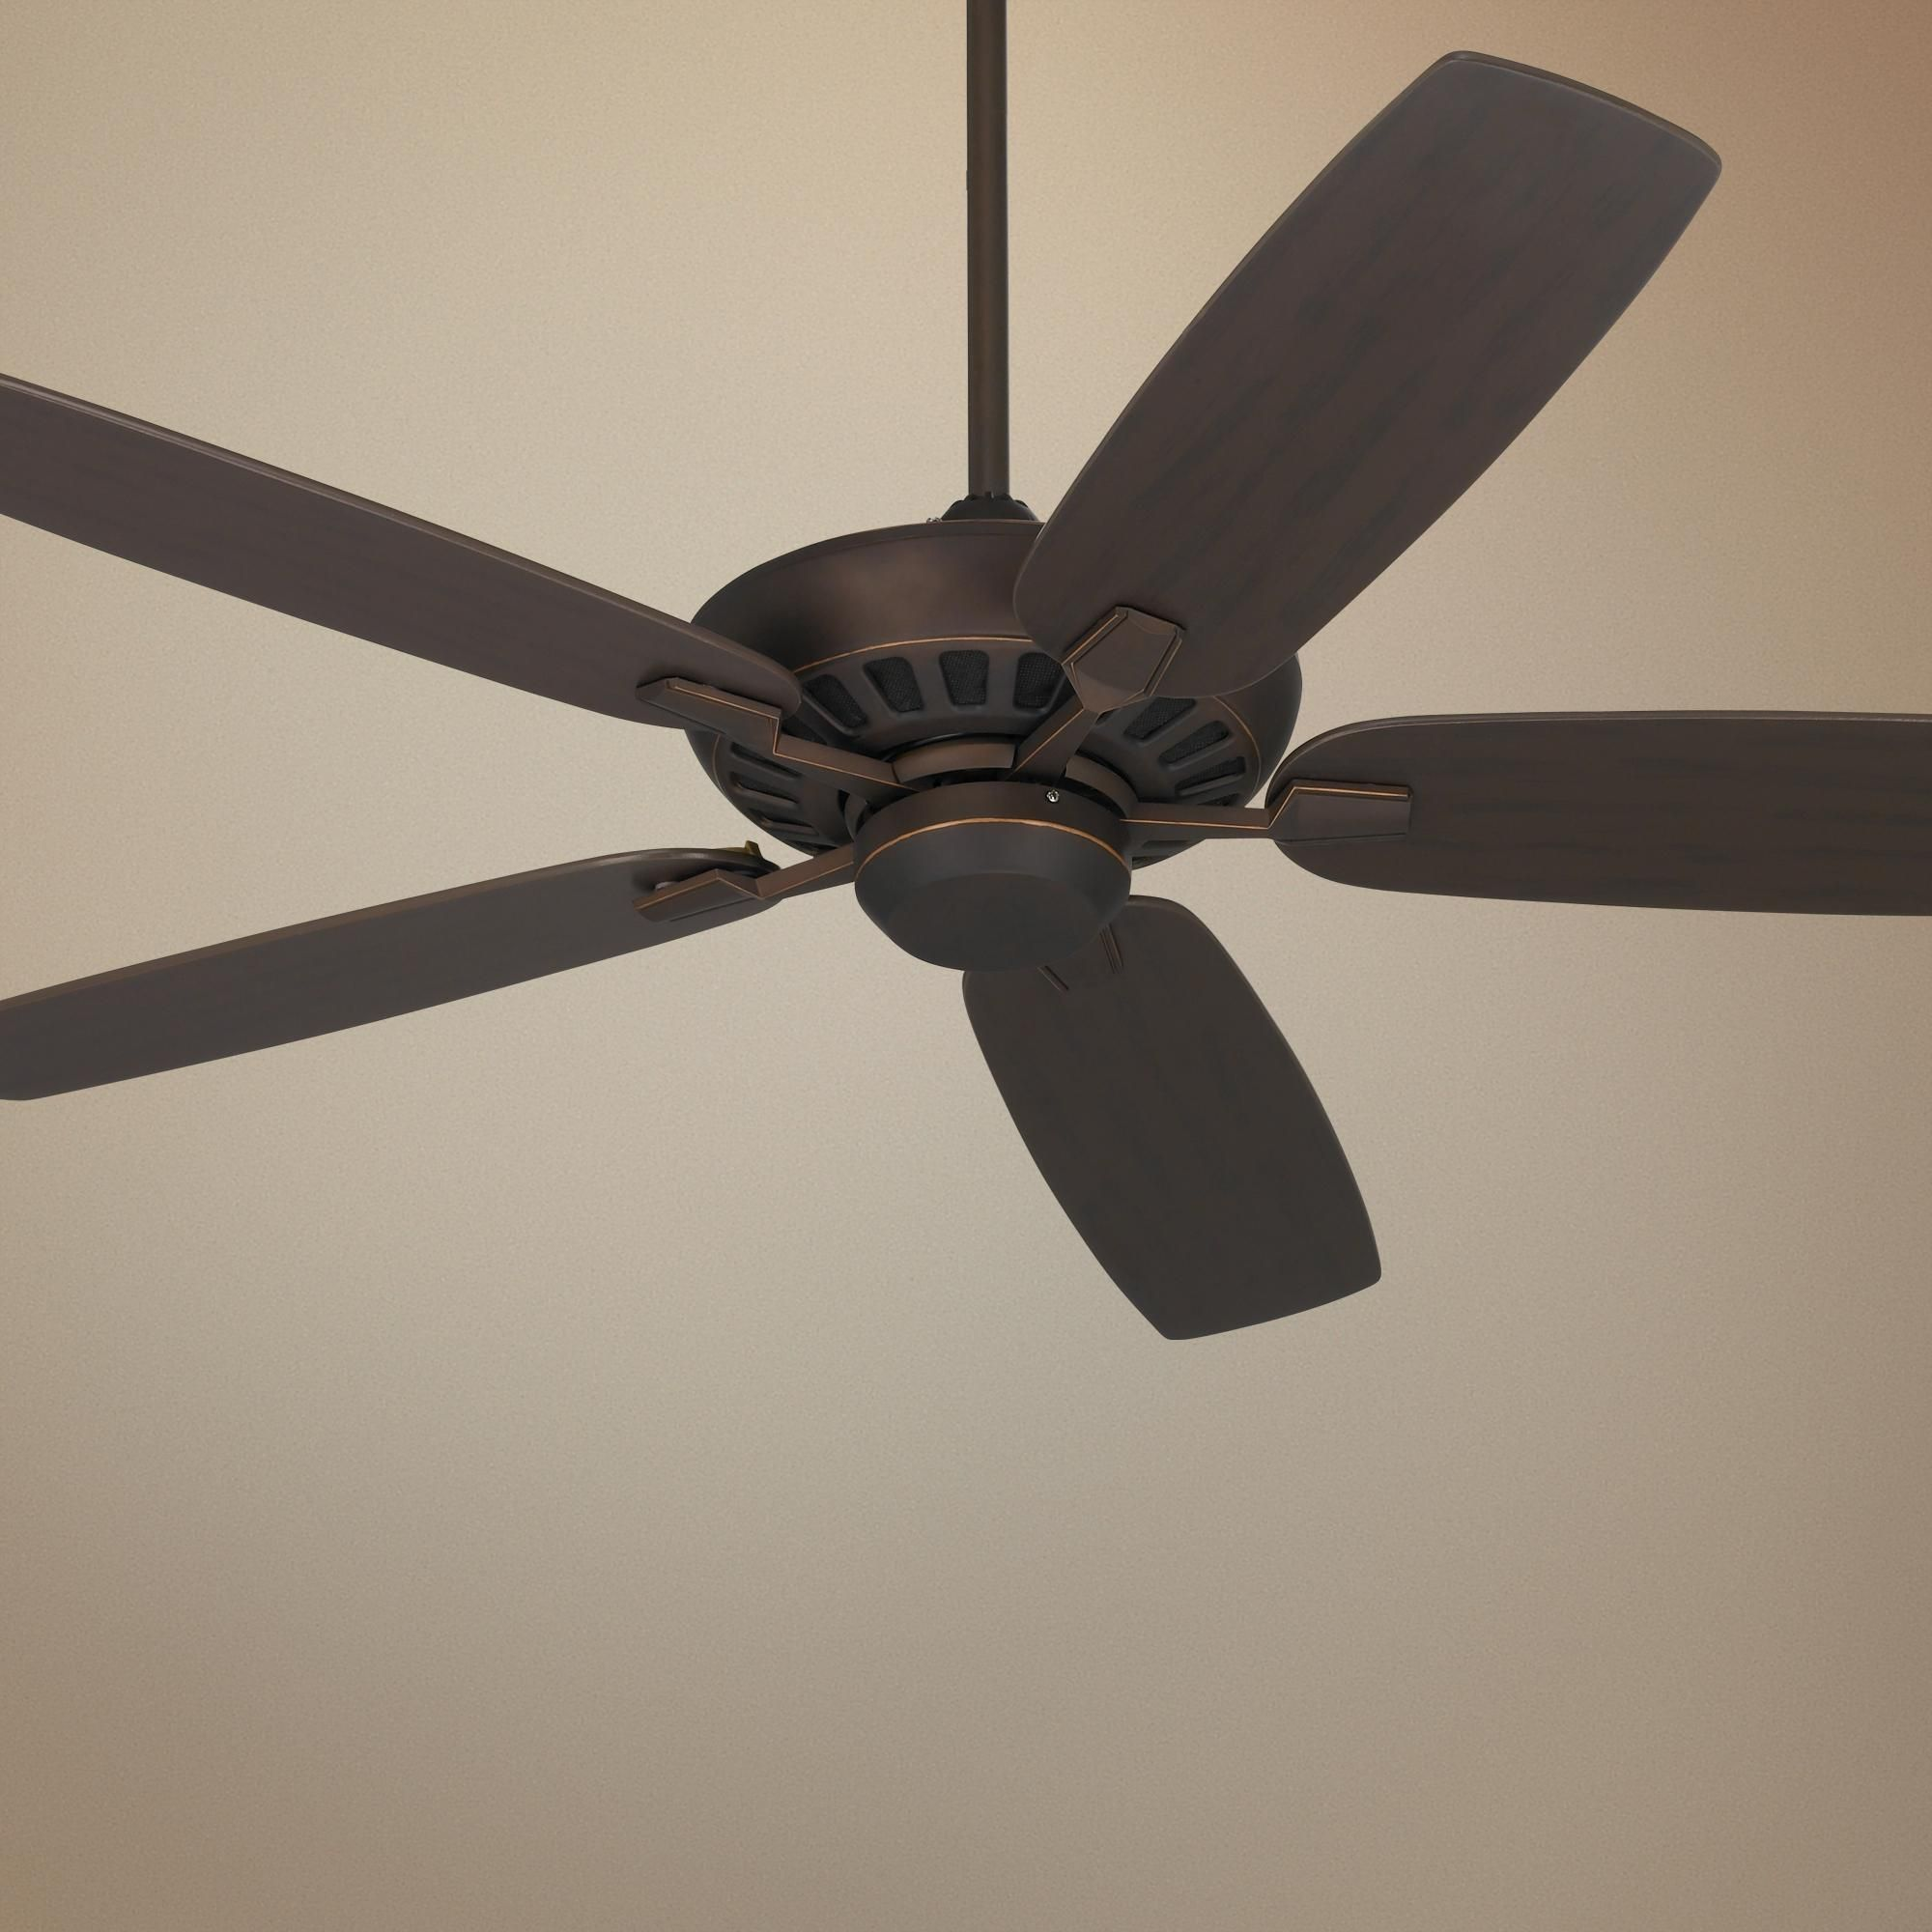 exhausting fans light ceiling how choose plus in fan bathroom to new lamps a with